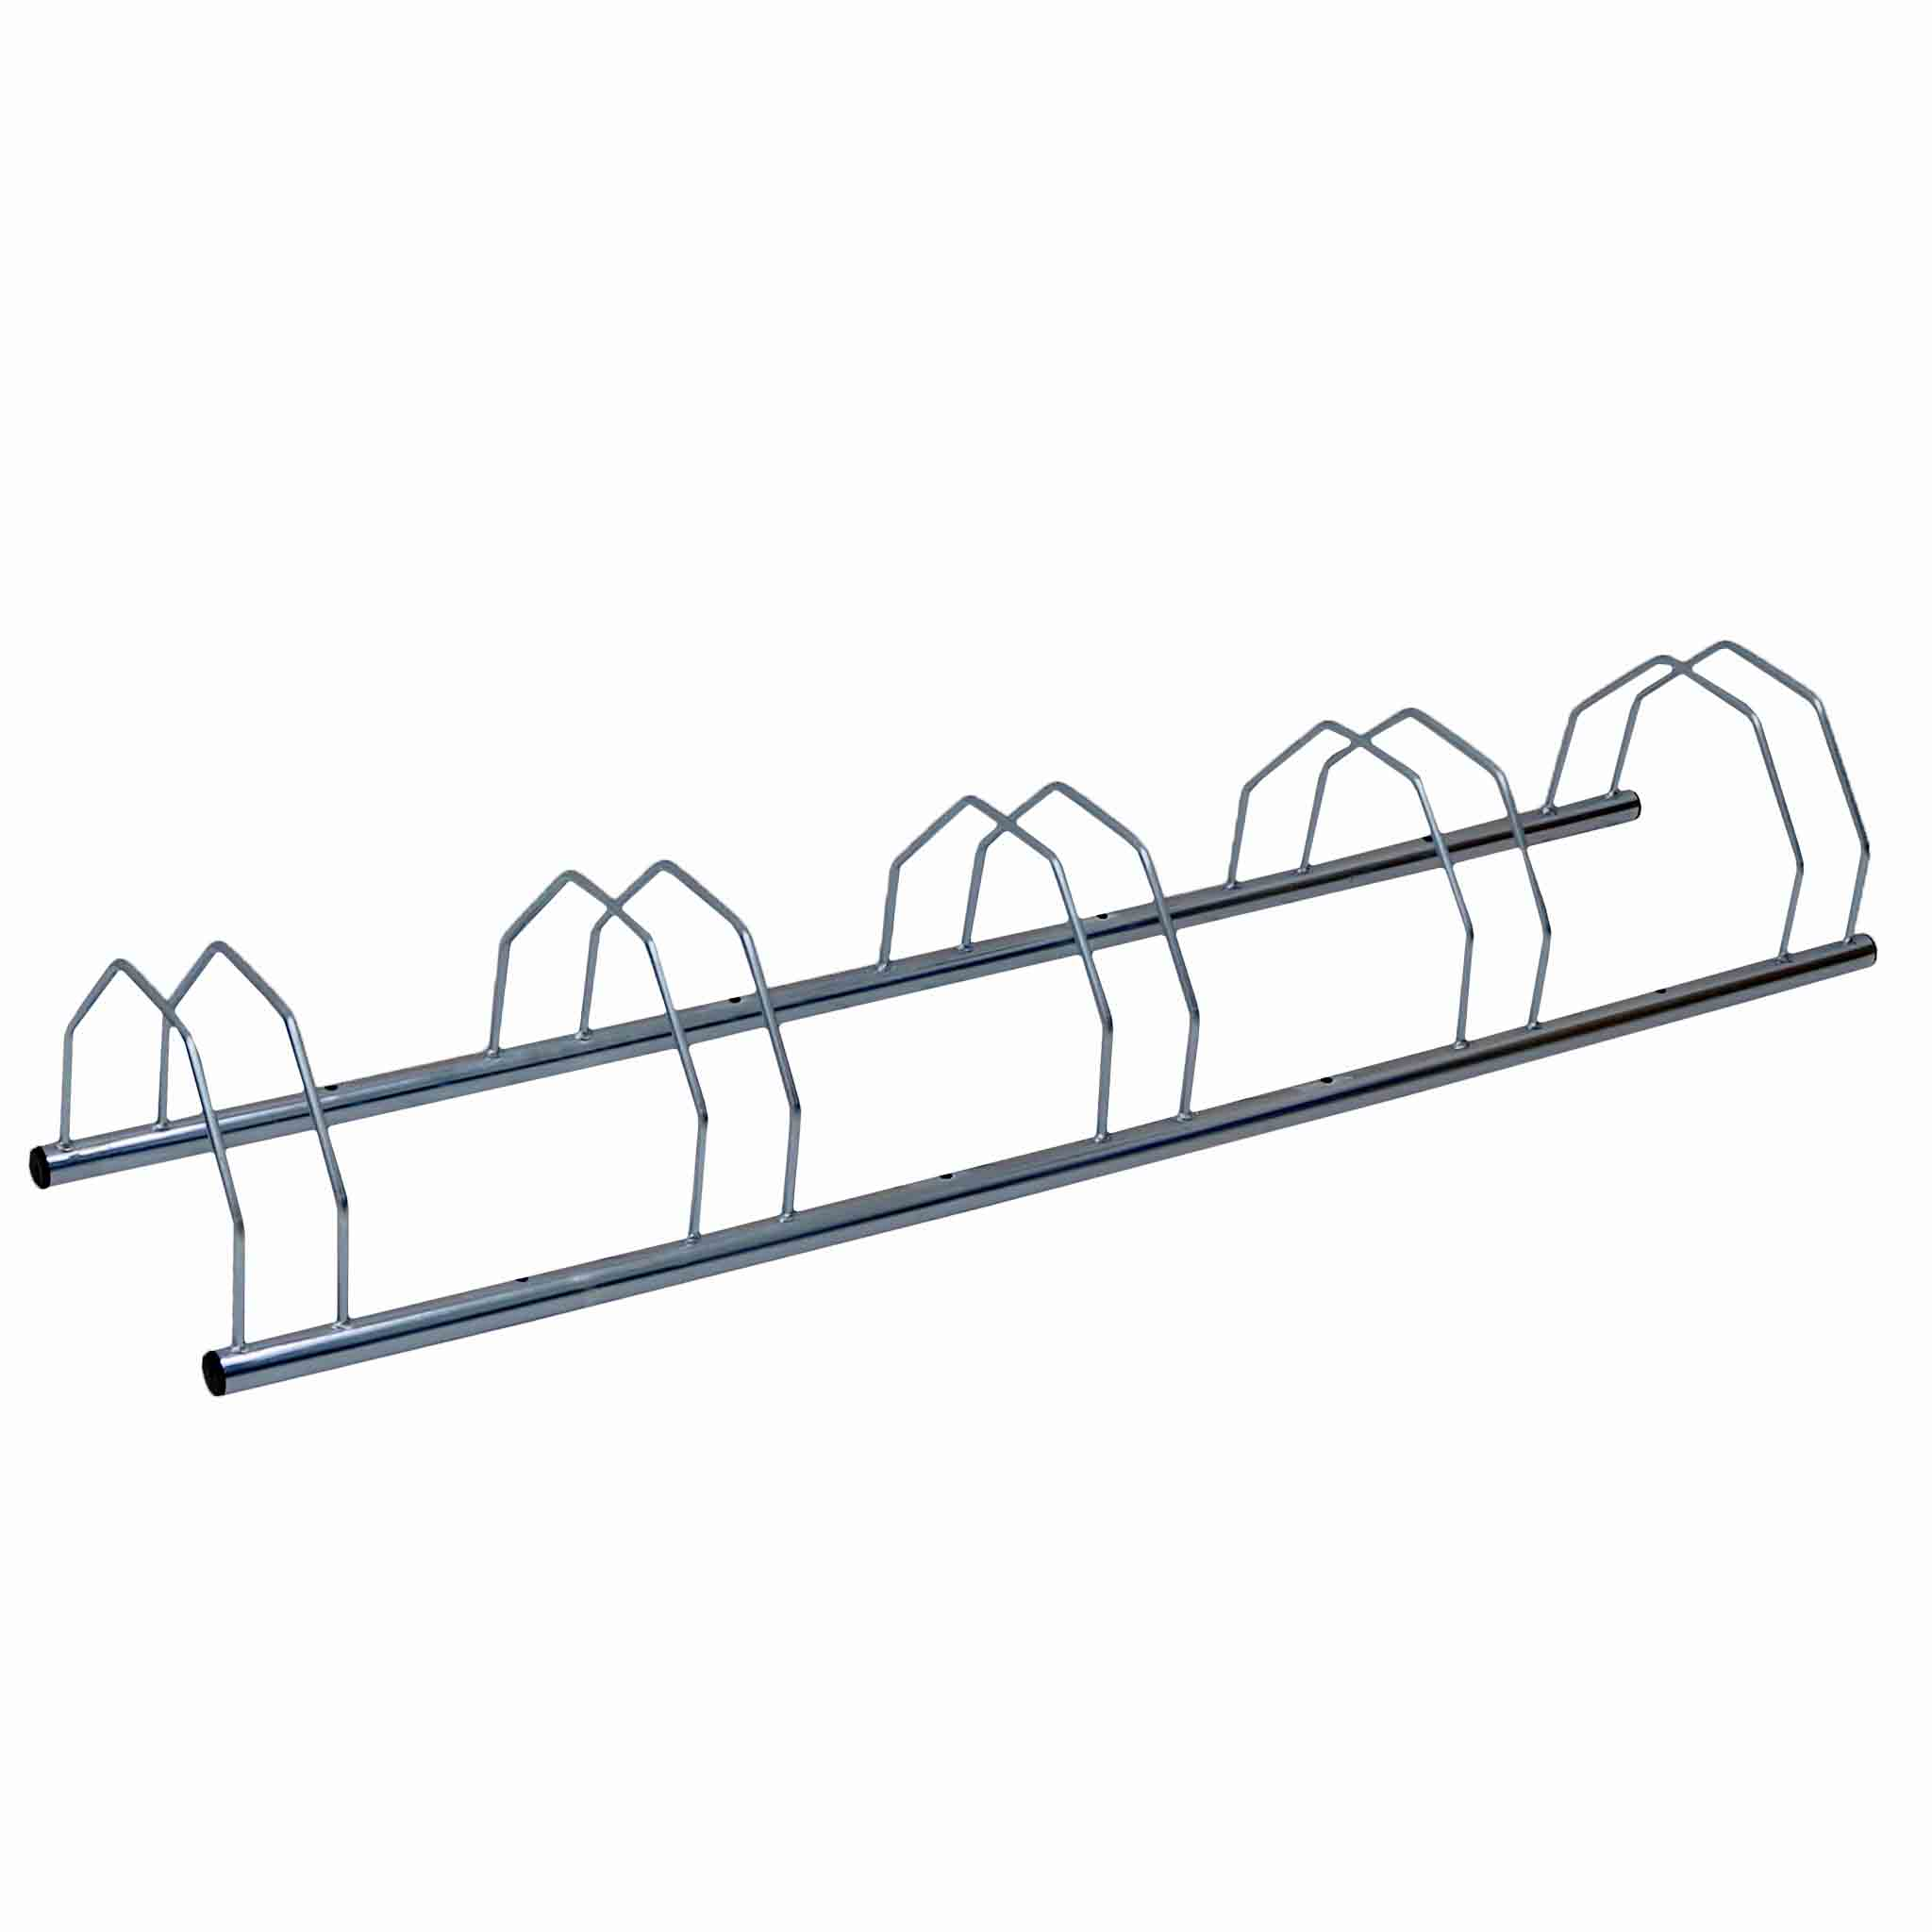 5 Five Slot Metal Heavy Duty Bike Stand Bicycle Storage Rack